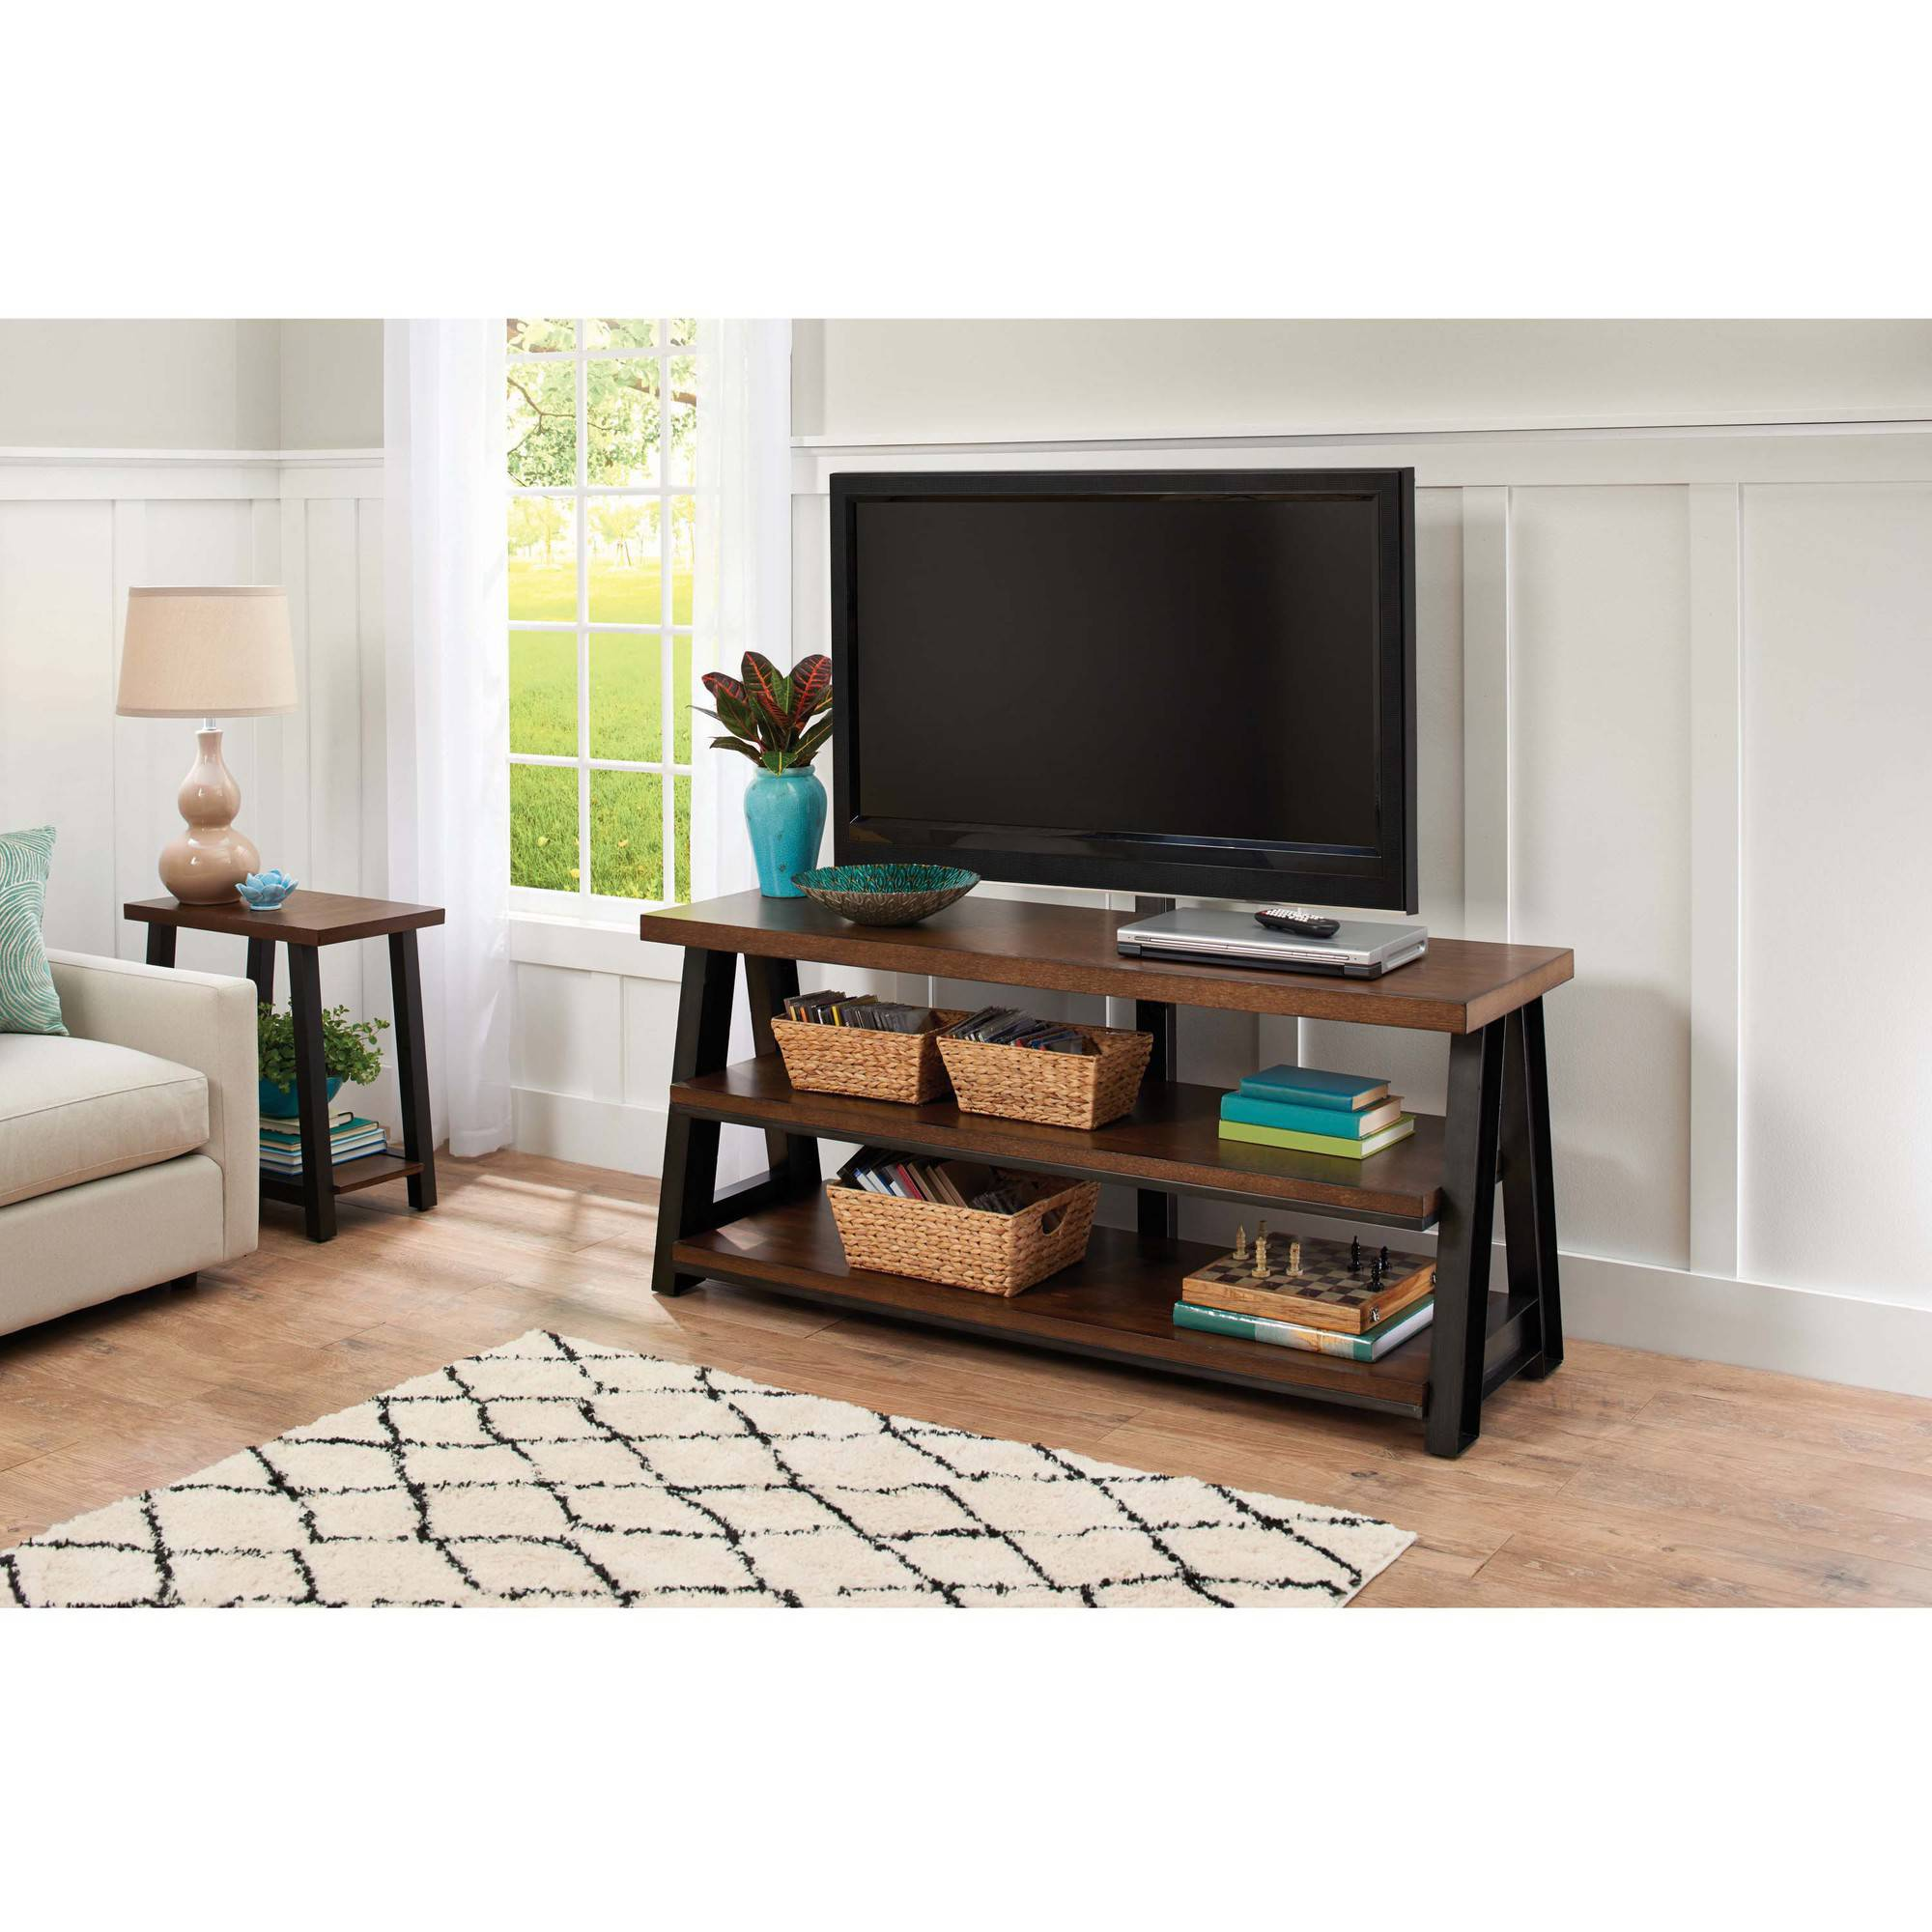 Better homes and gardens tv stand cheap homes tv find homes tv deals on line at alibabacom Home garden television